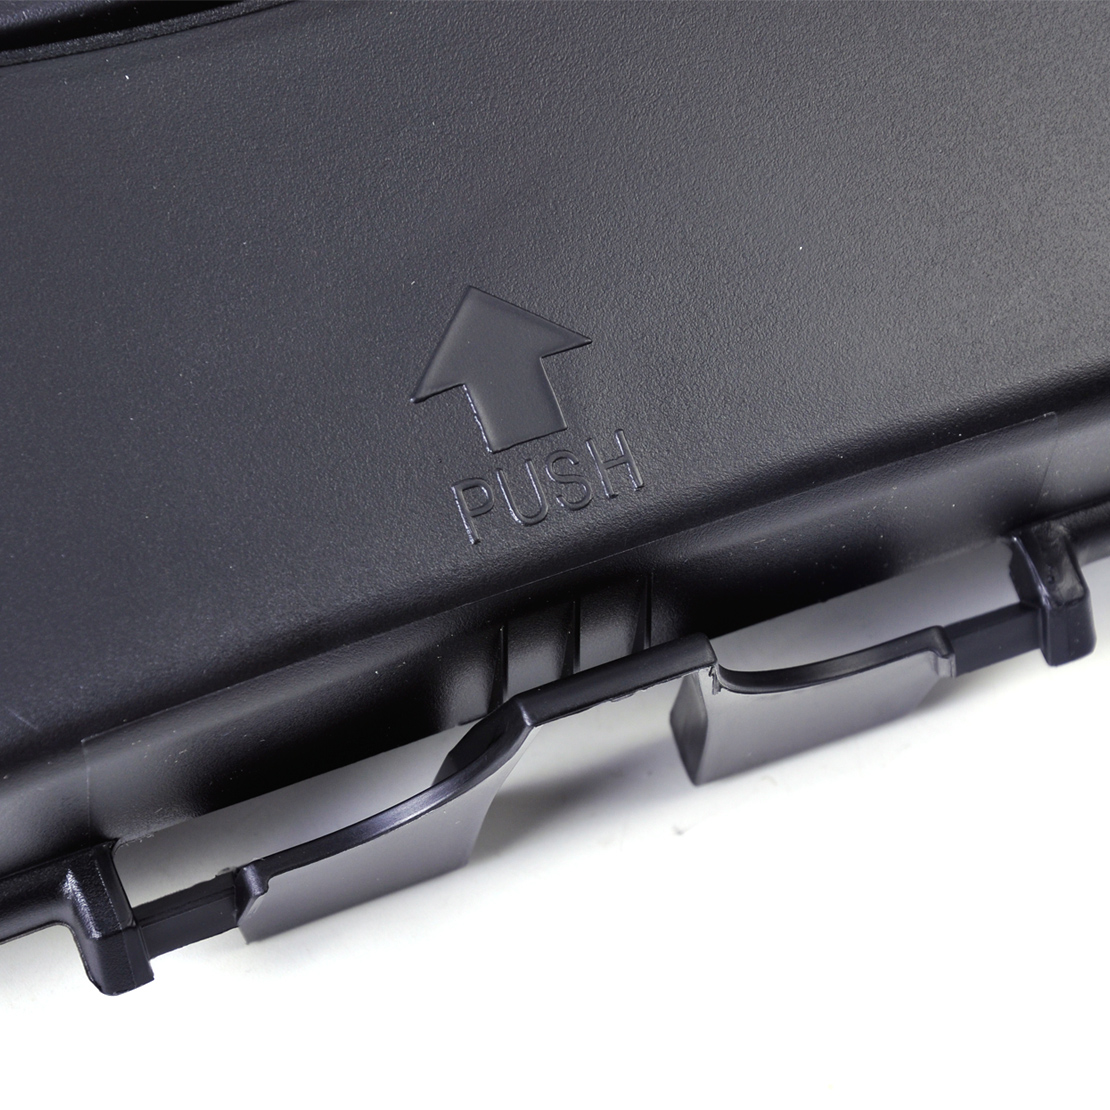 Volkswagen Jetta Battery: 1KD 915 443 Battery Tray Cover Trim For VW Jetta Golf